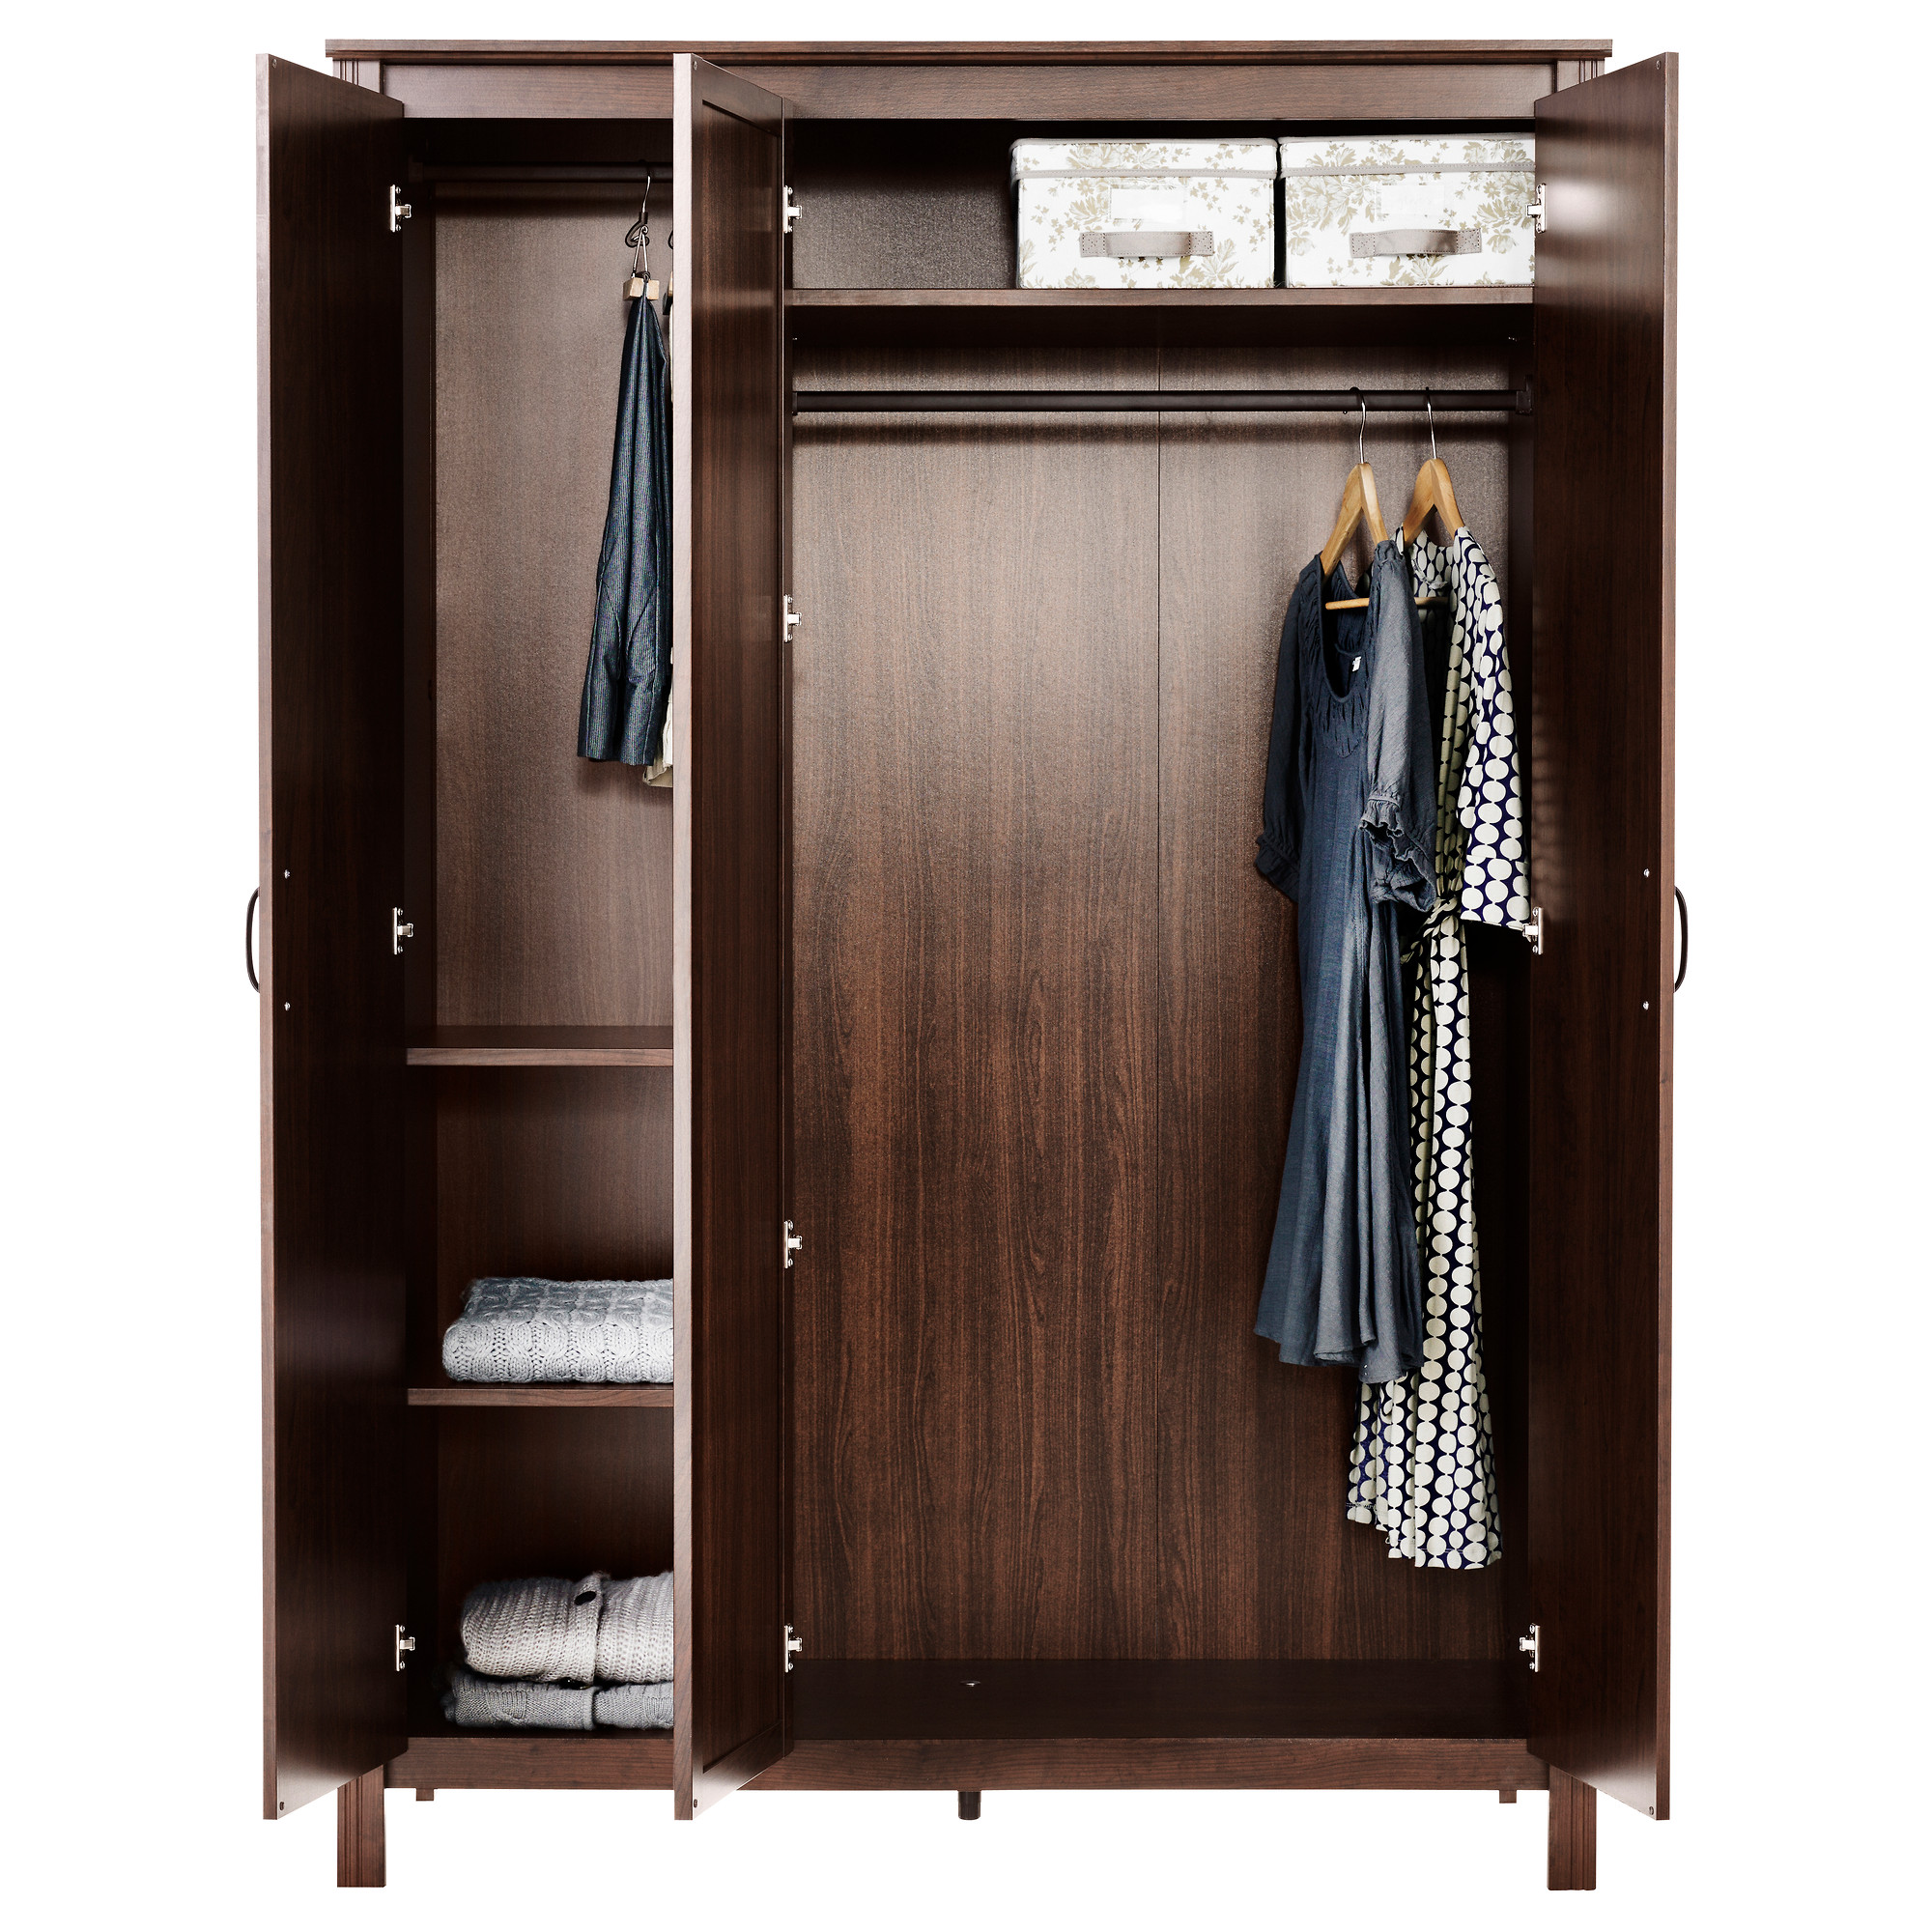 Low Cost Wardrobes | Cheap Wardrobe Closet | Locking Wardrobe Closet